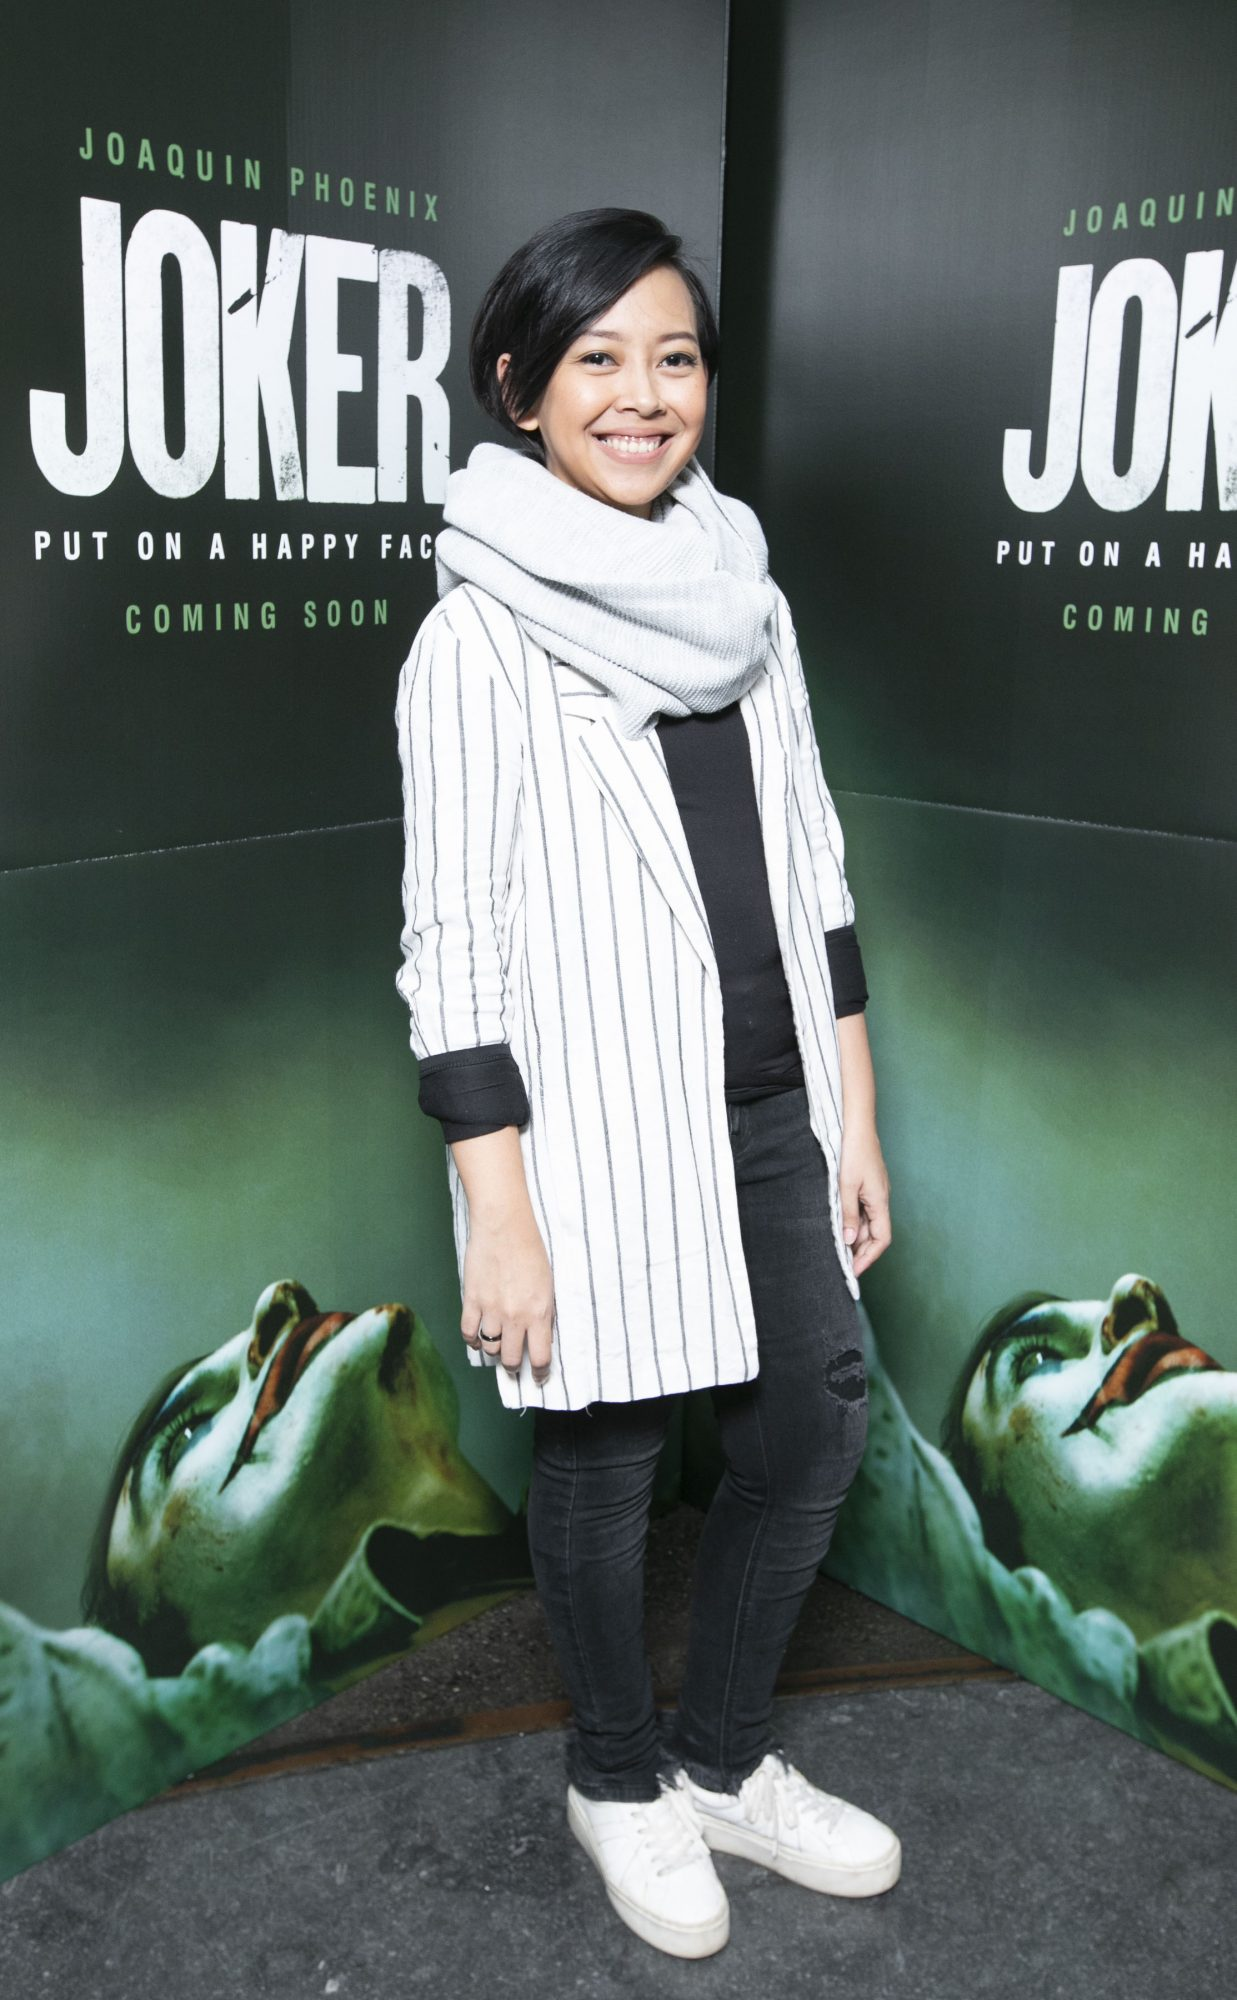 Achi Hardjakusumah at the special 70mm screening of Todd Phillips Joker at the IFI Dublin. Pic: Brian McEvoy Photography